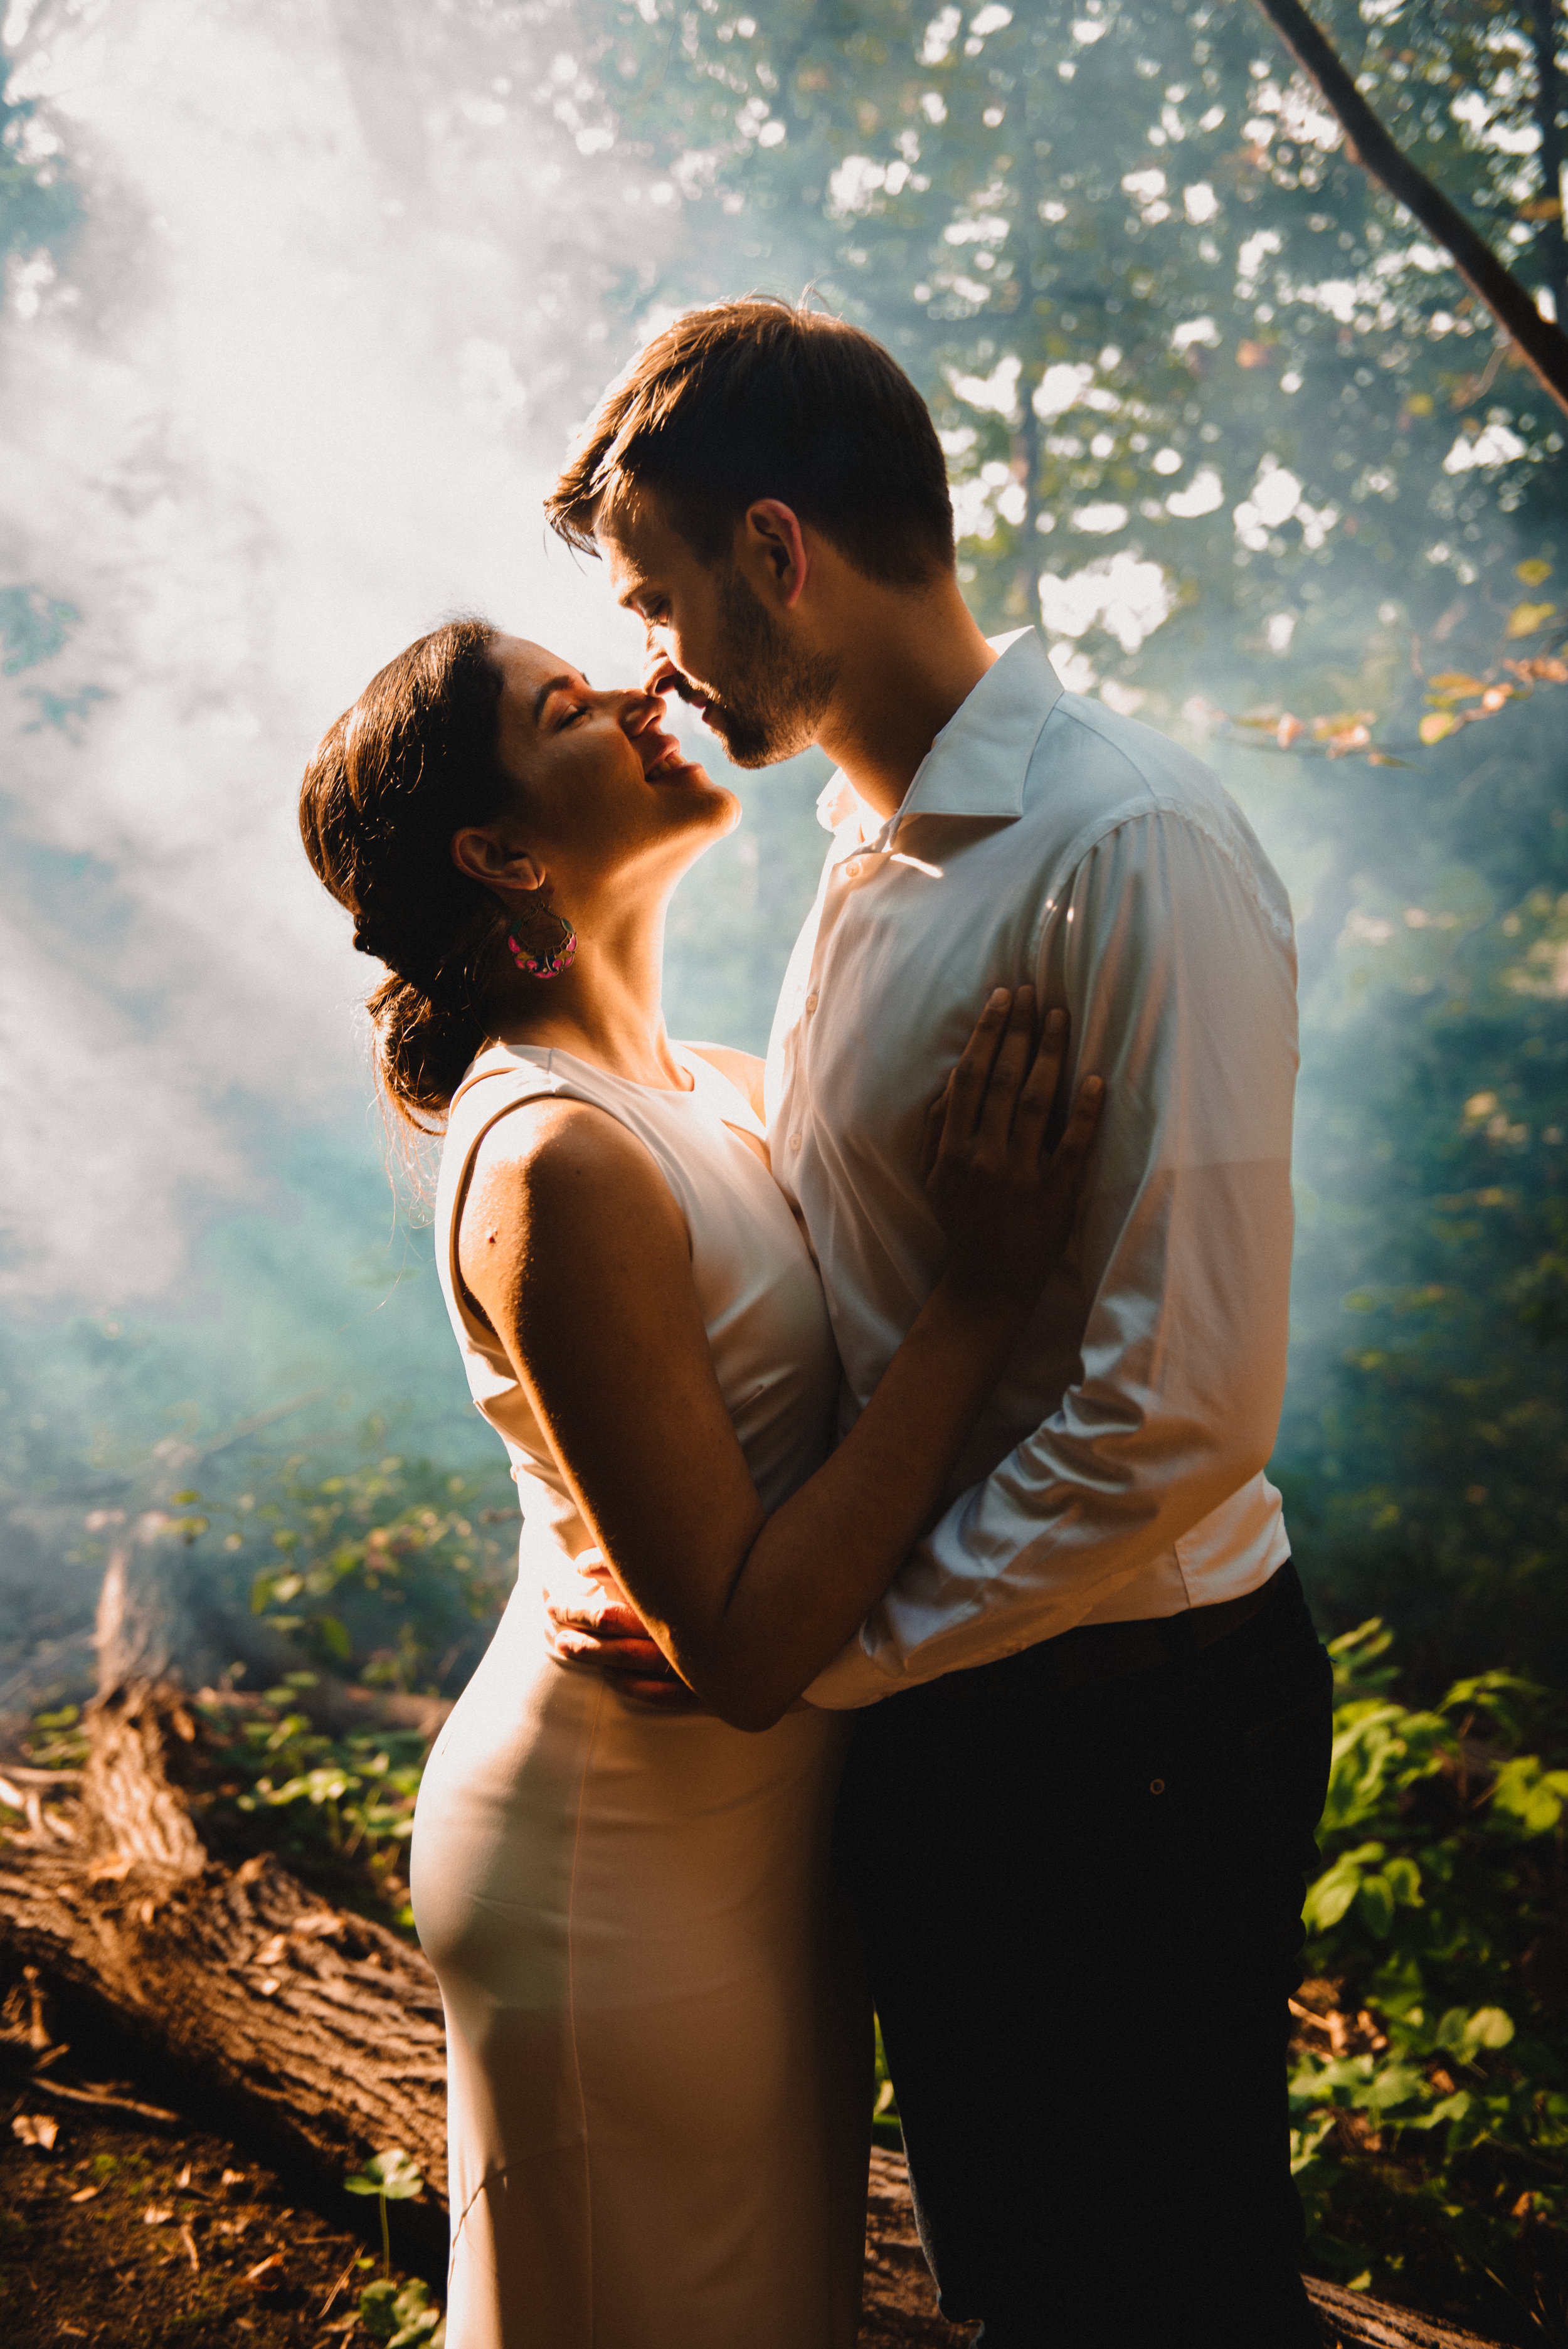 Mocha Tree Studios Ottawa Wedding and Engagement Photographer and Videographer Dark Moody Intimate Authentic Modern Romantic Cinematic Best Candid Princess Louise Falls 10